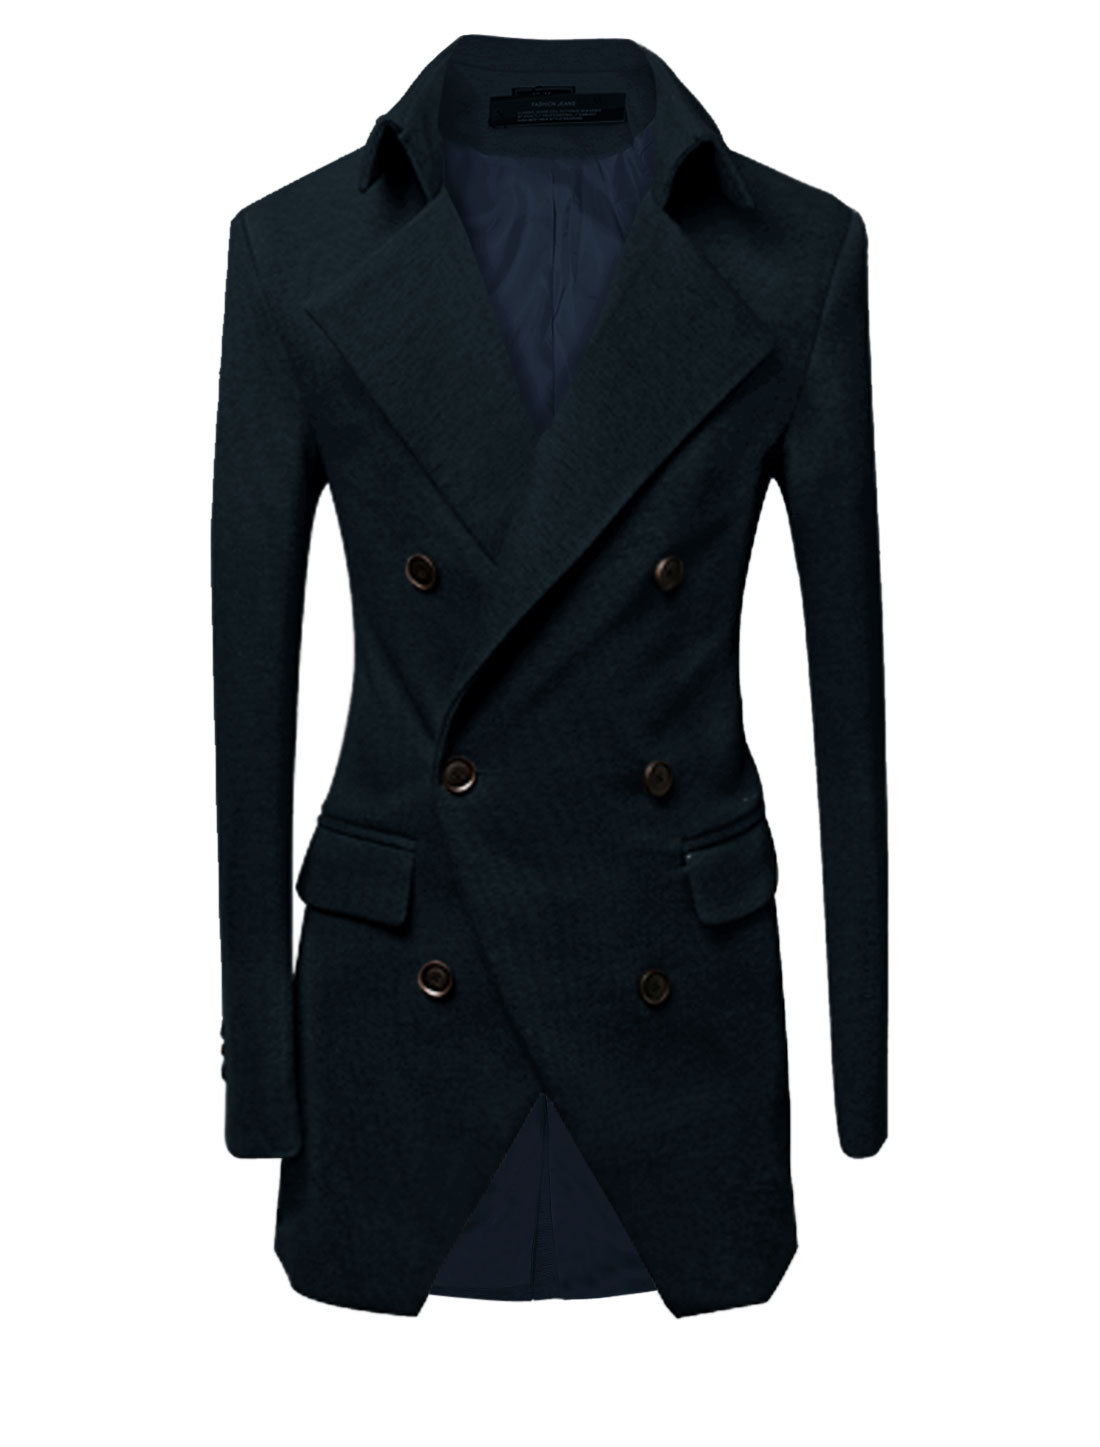 Men Button Closure Front Vertical Pockets Trench Jacket Navy Blue M